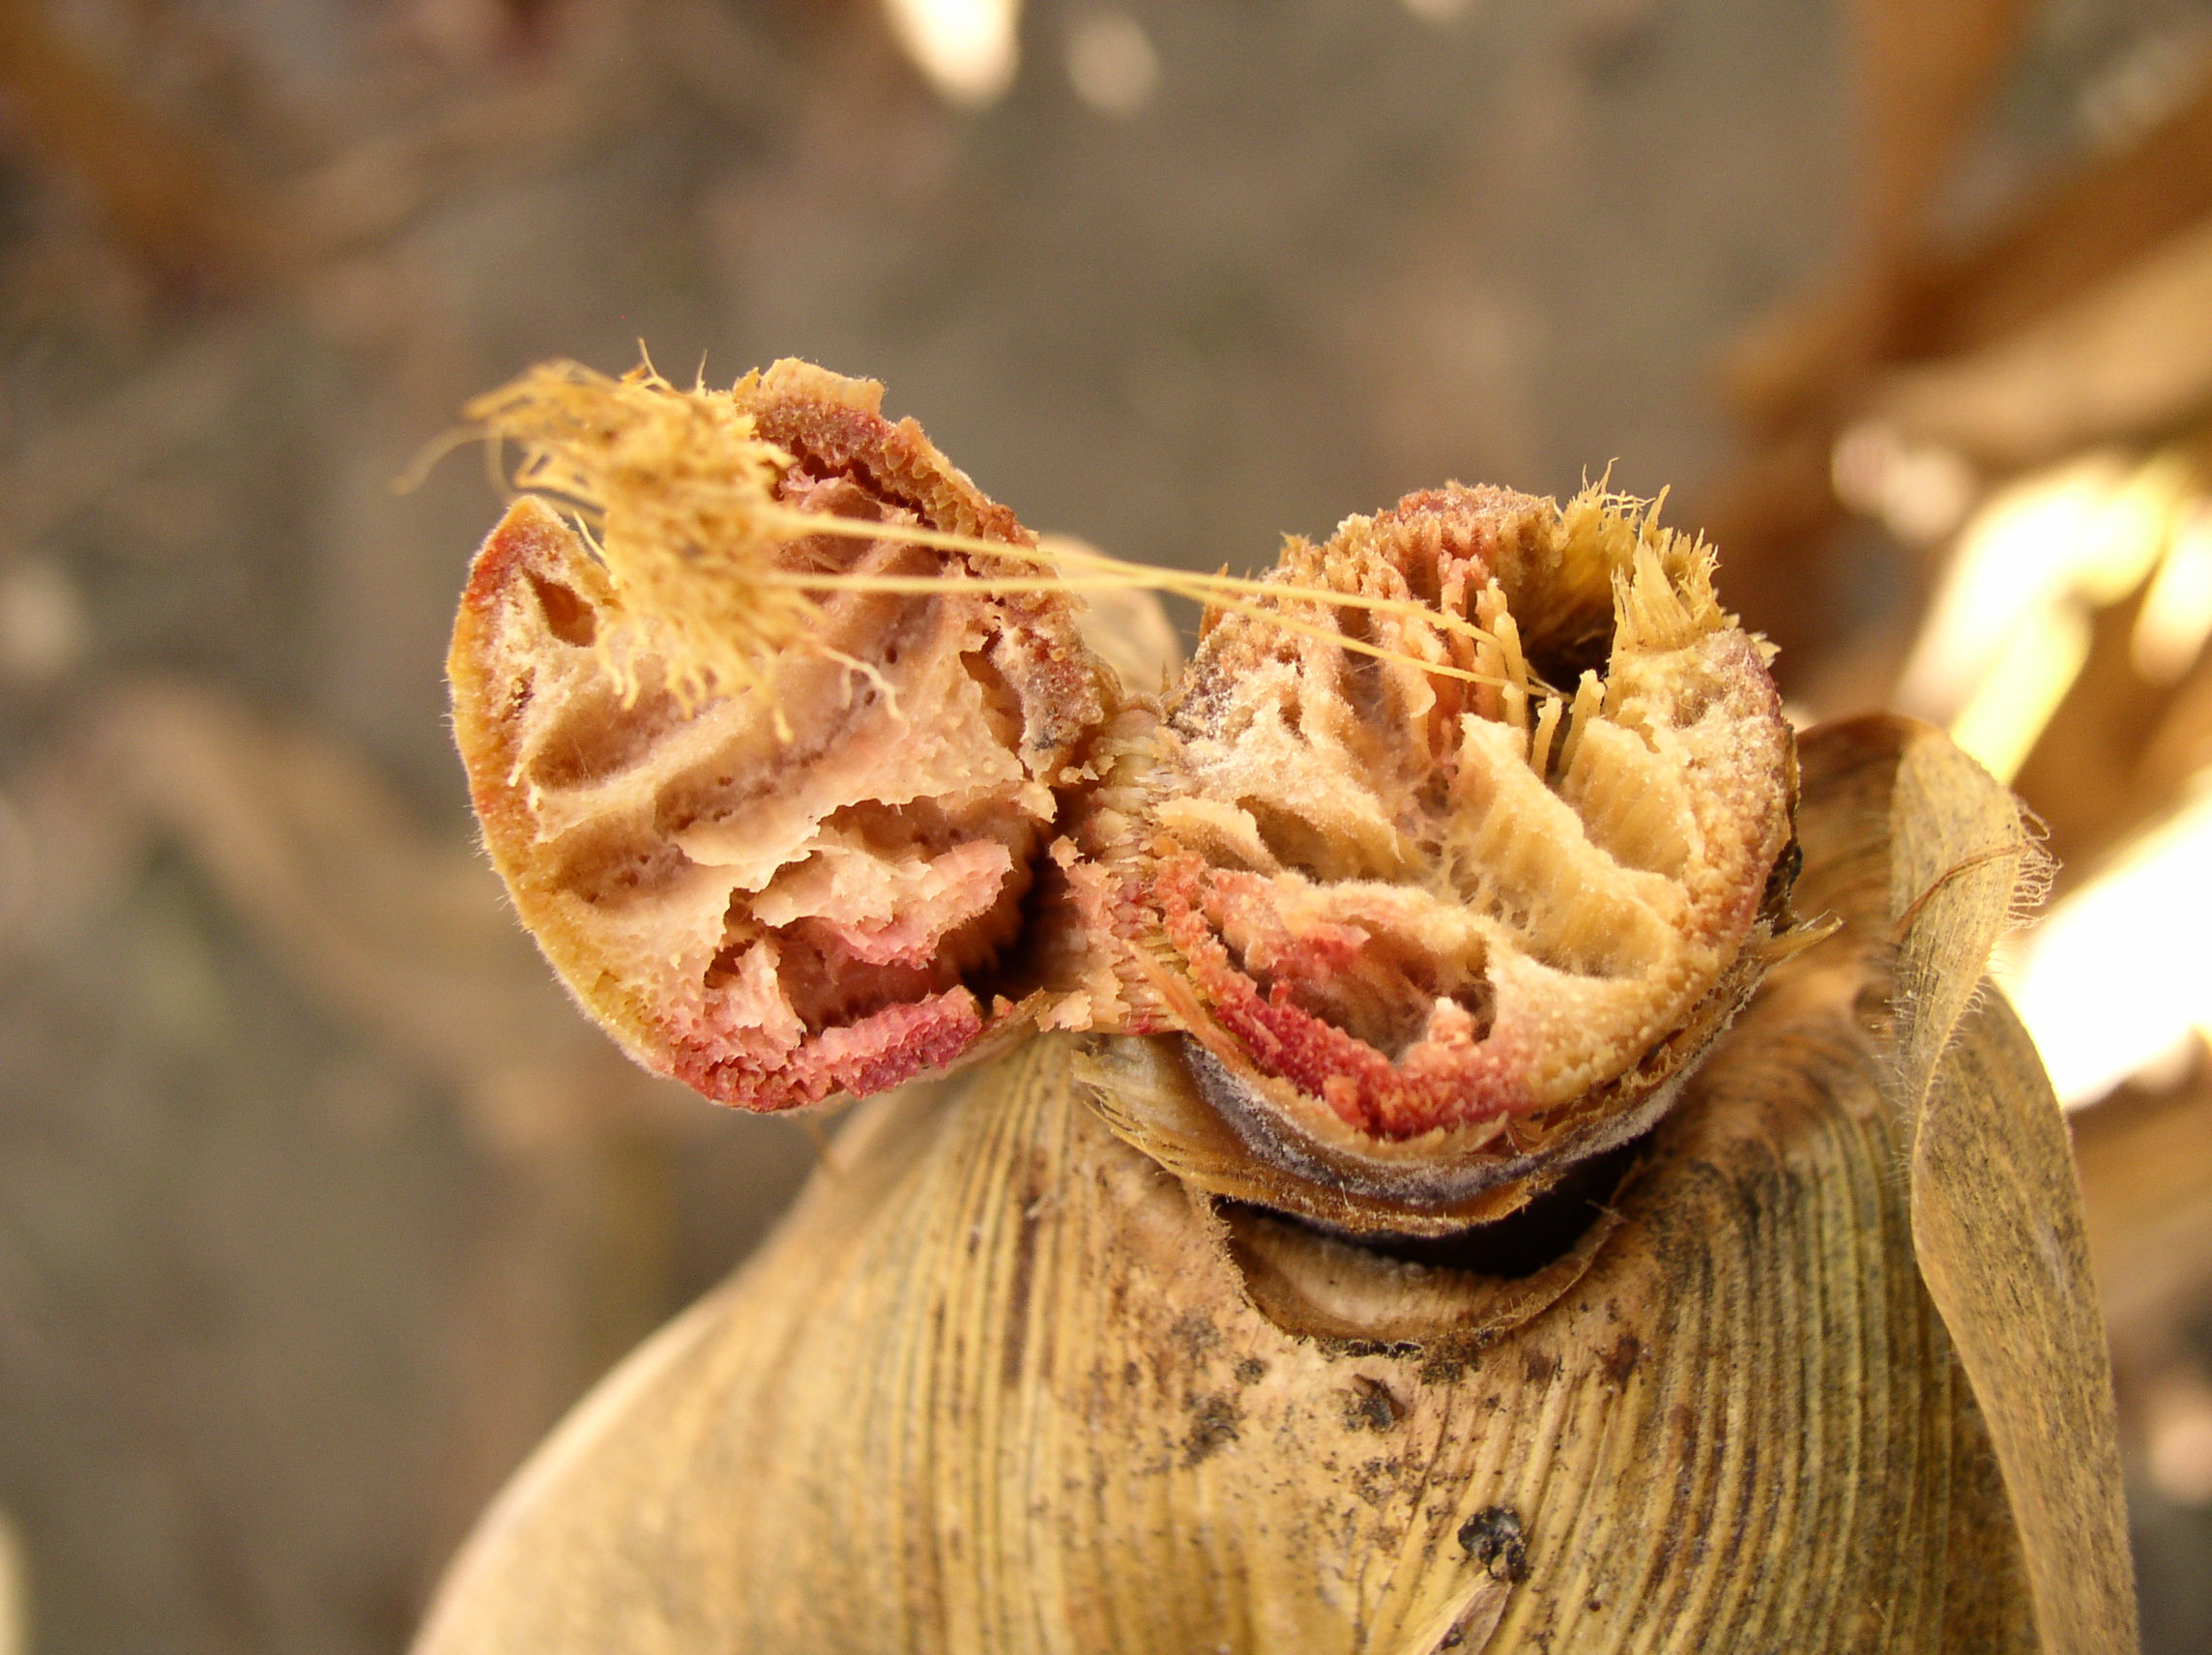 Internal stalk discoloration indicative of Gibberella stalk rot.